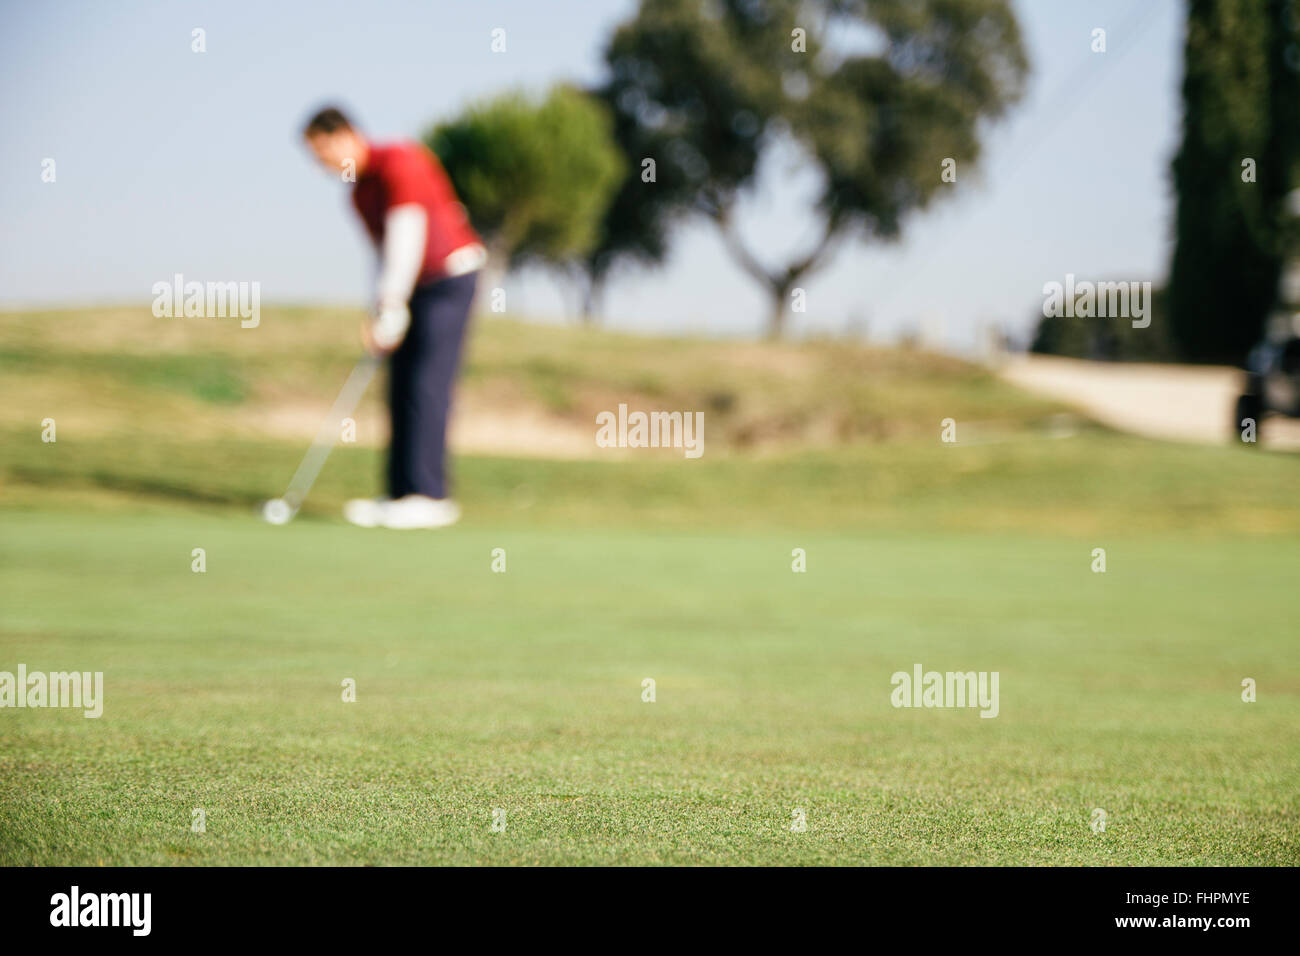 Unfocused golfer playing golf on the green of a golf course - Stock Image